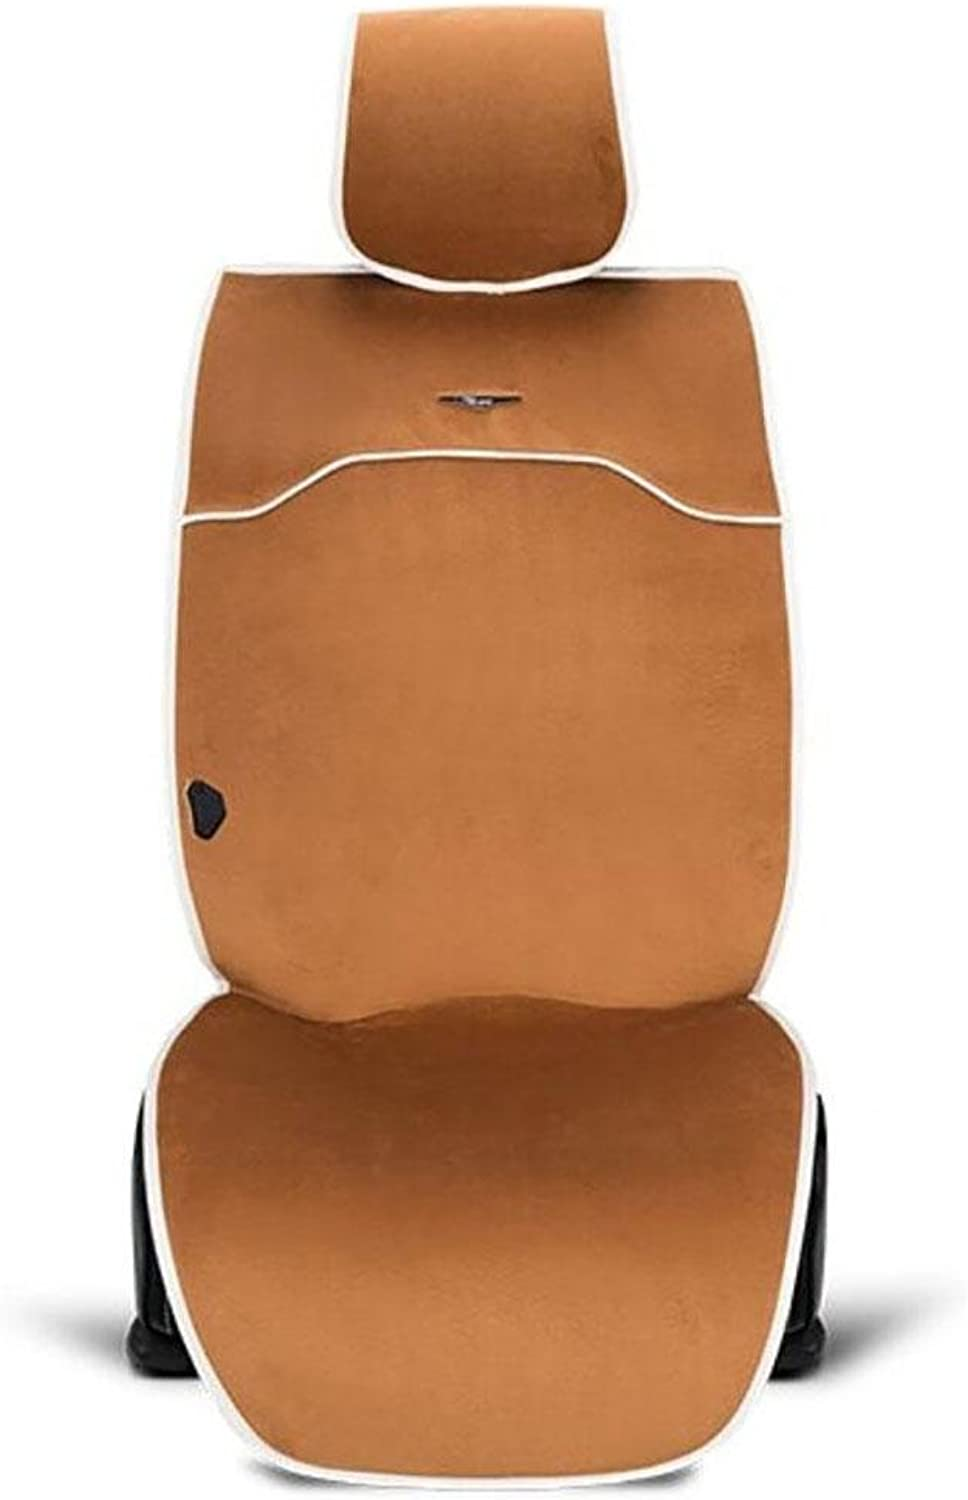 D&F 12V Heated Seat Cushion Cover with Lumbar Suppor,Cigarette Lighter Plug, Special Fitting (greenical)with Thermostat